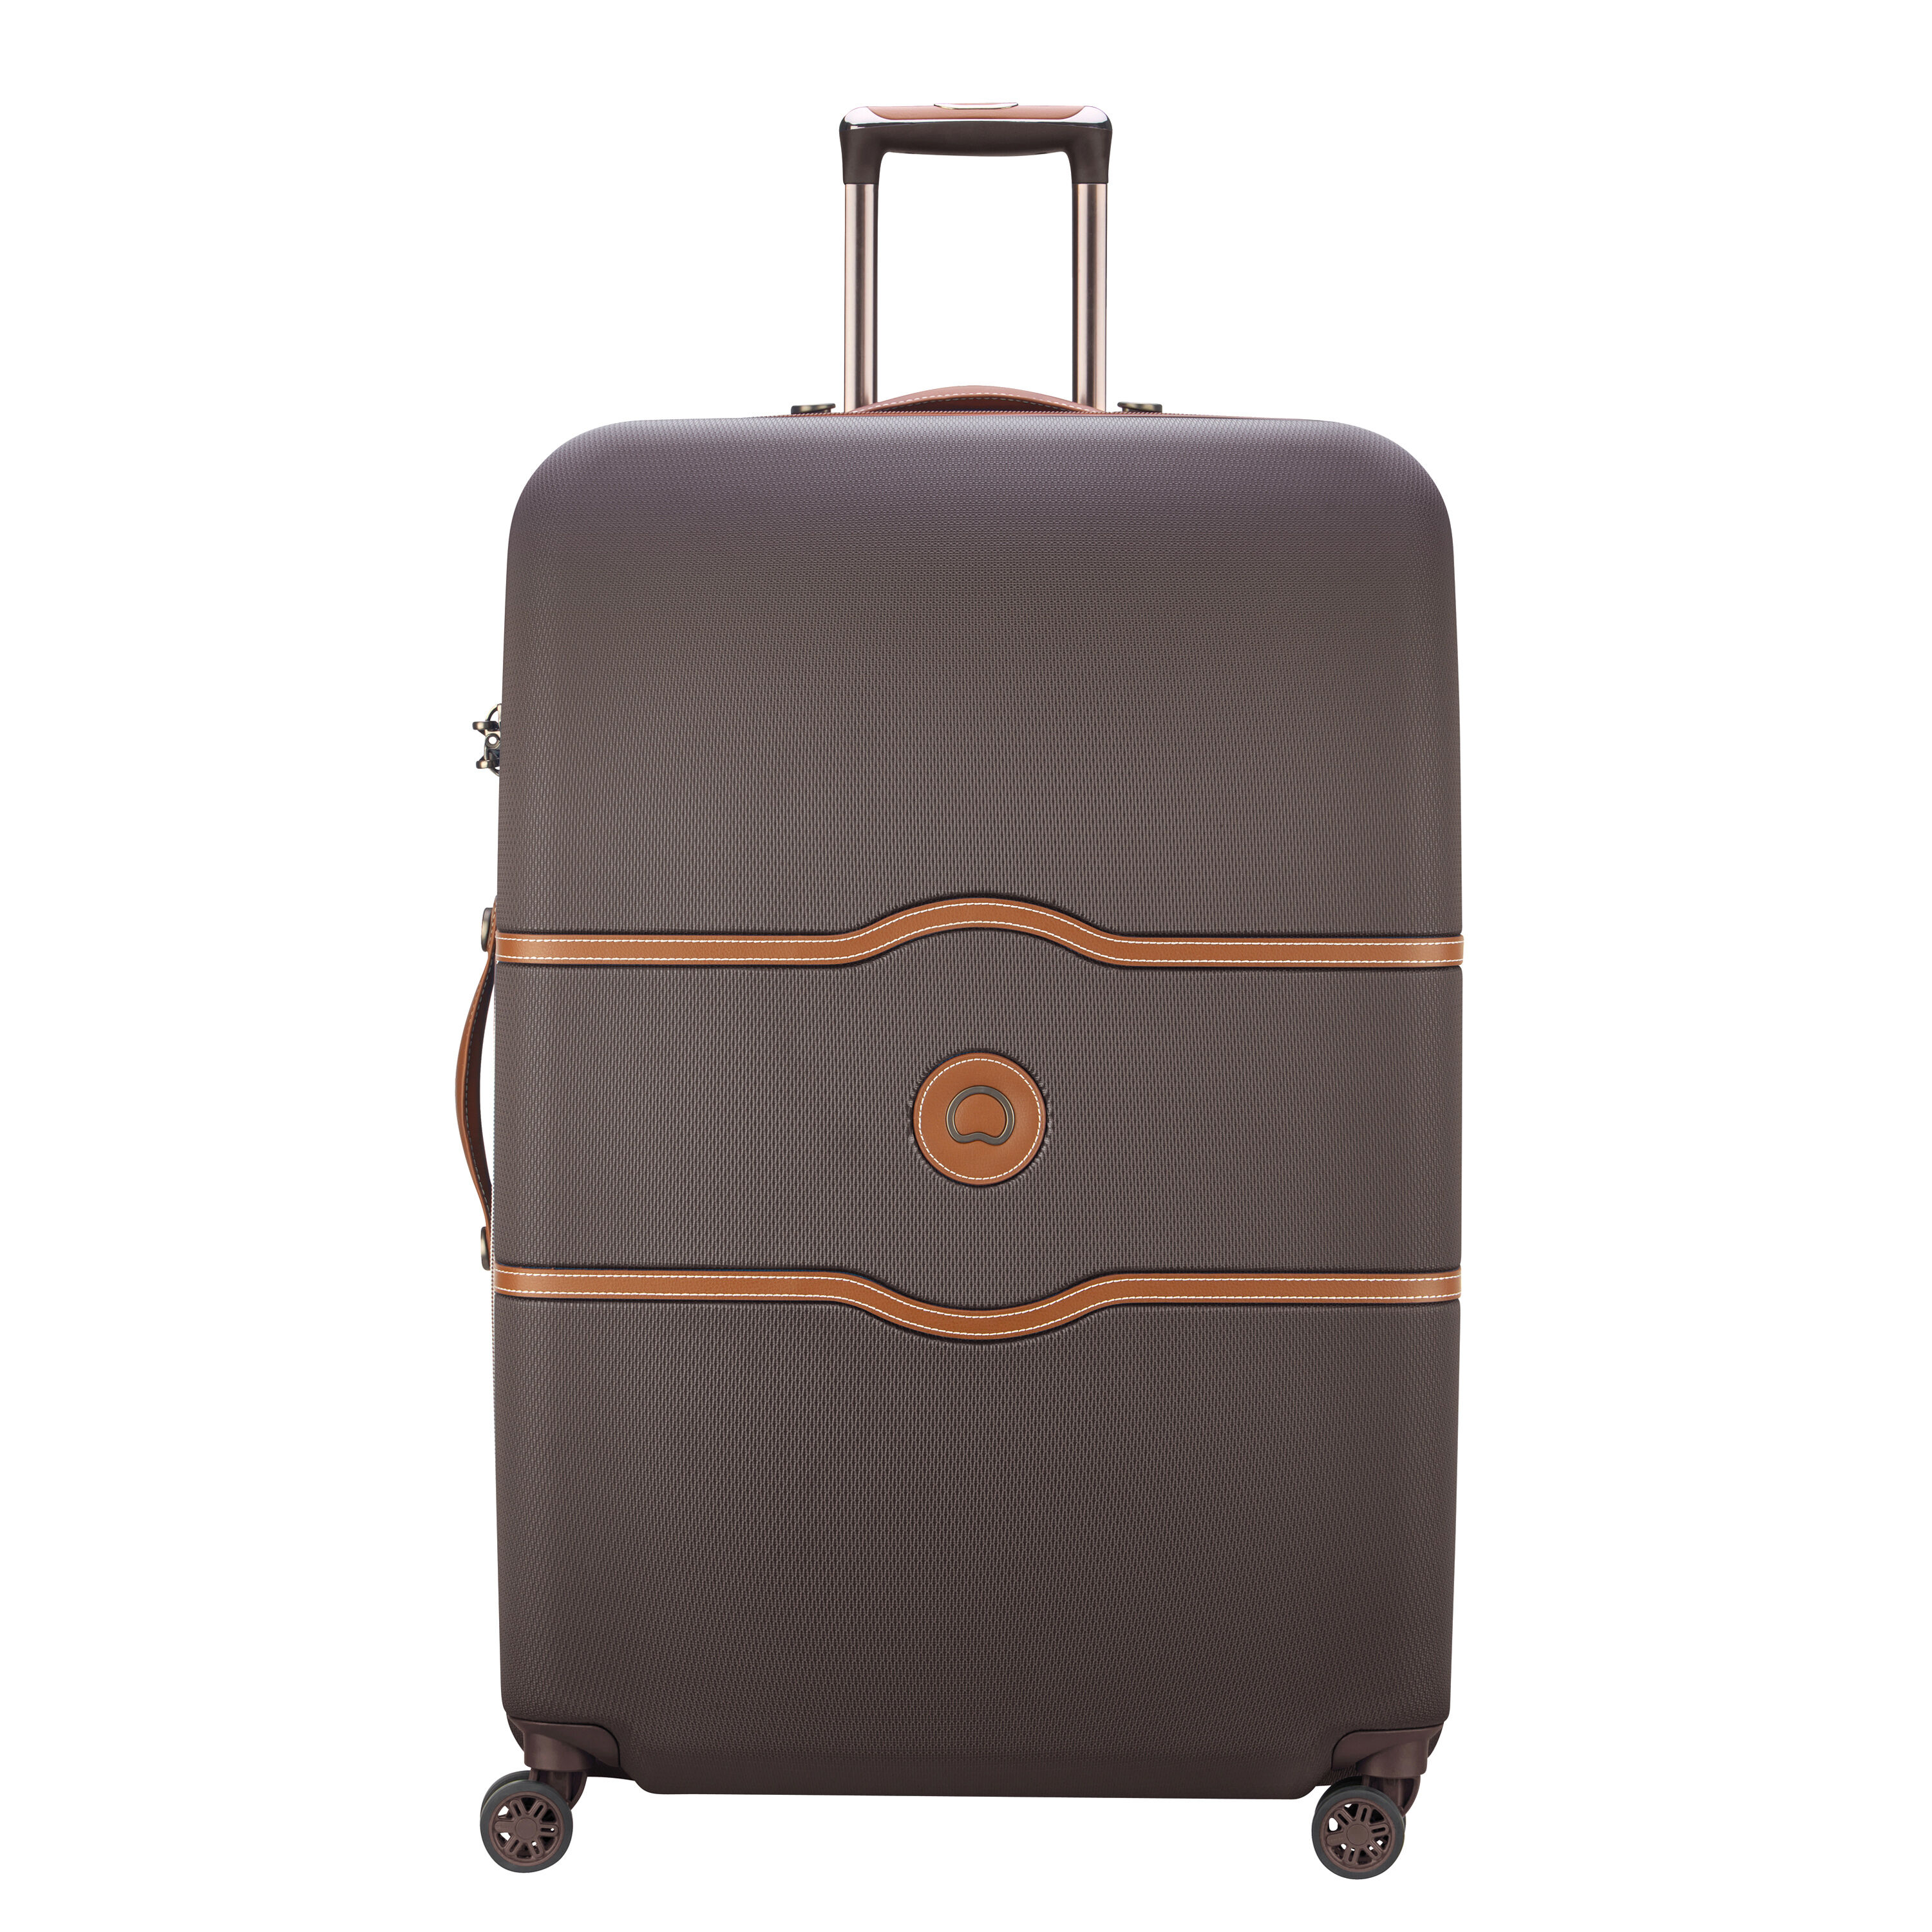 Delsey Valise cabine Chatelet Air CAB 4 DR 55 DtQffC5XS9